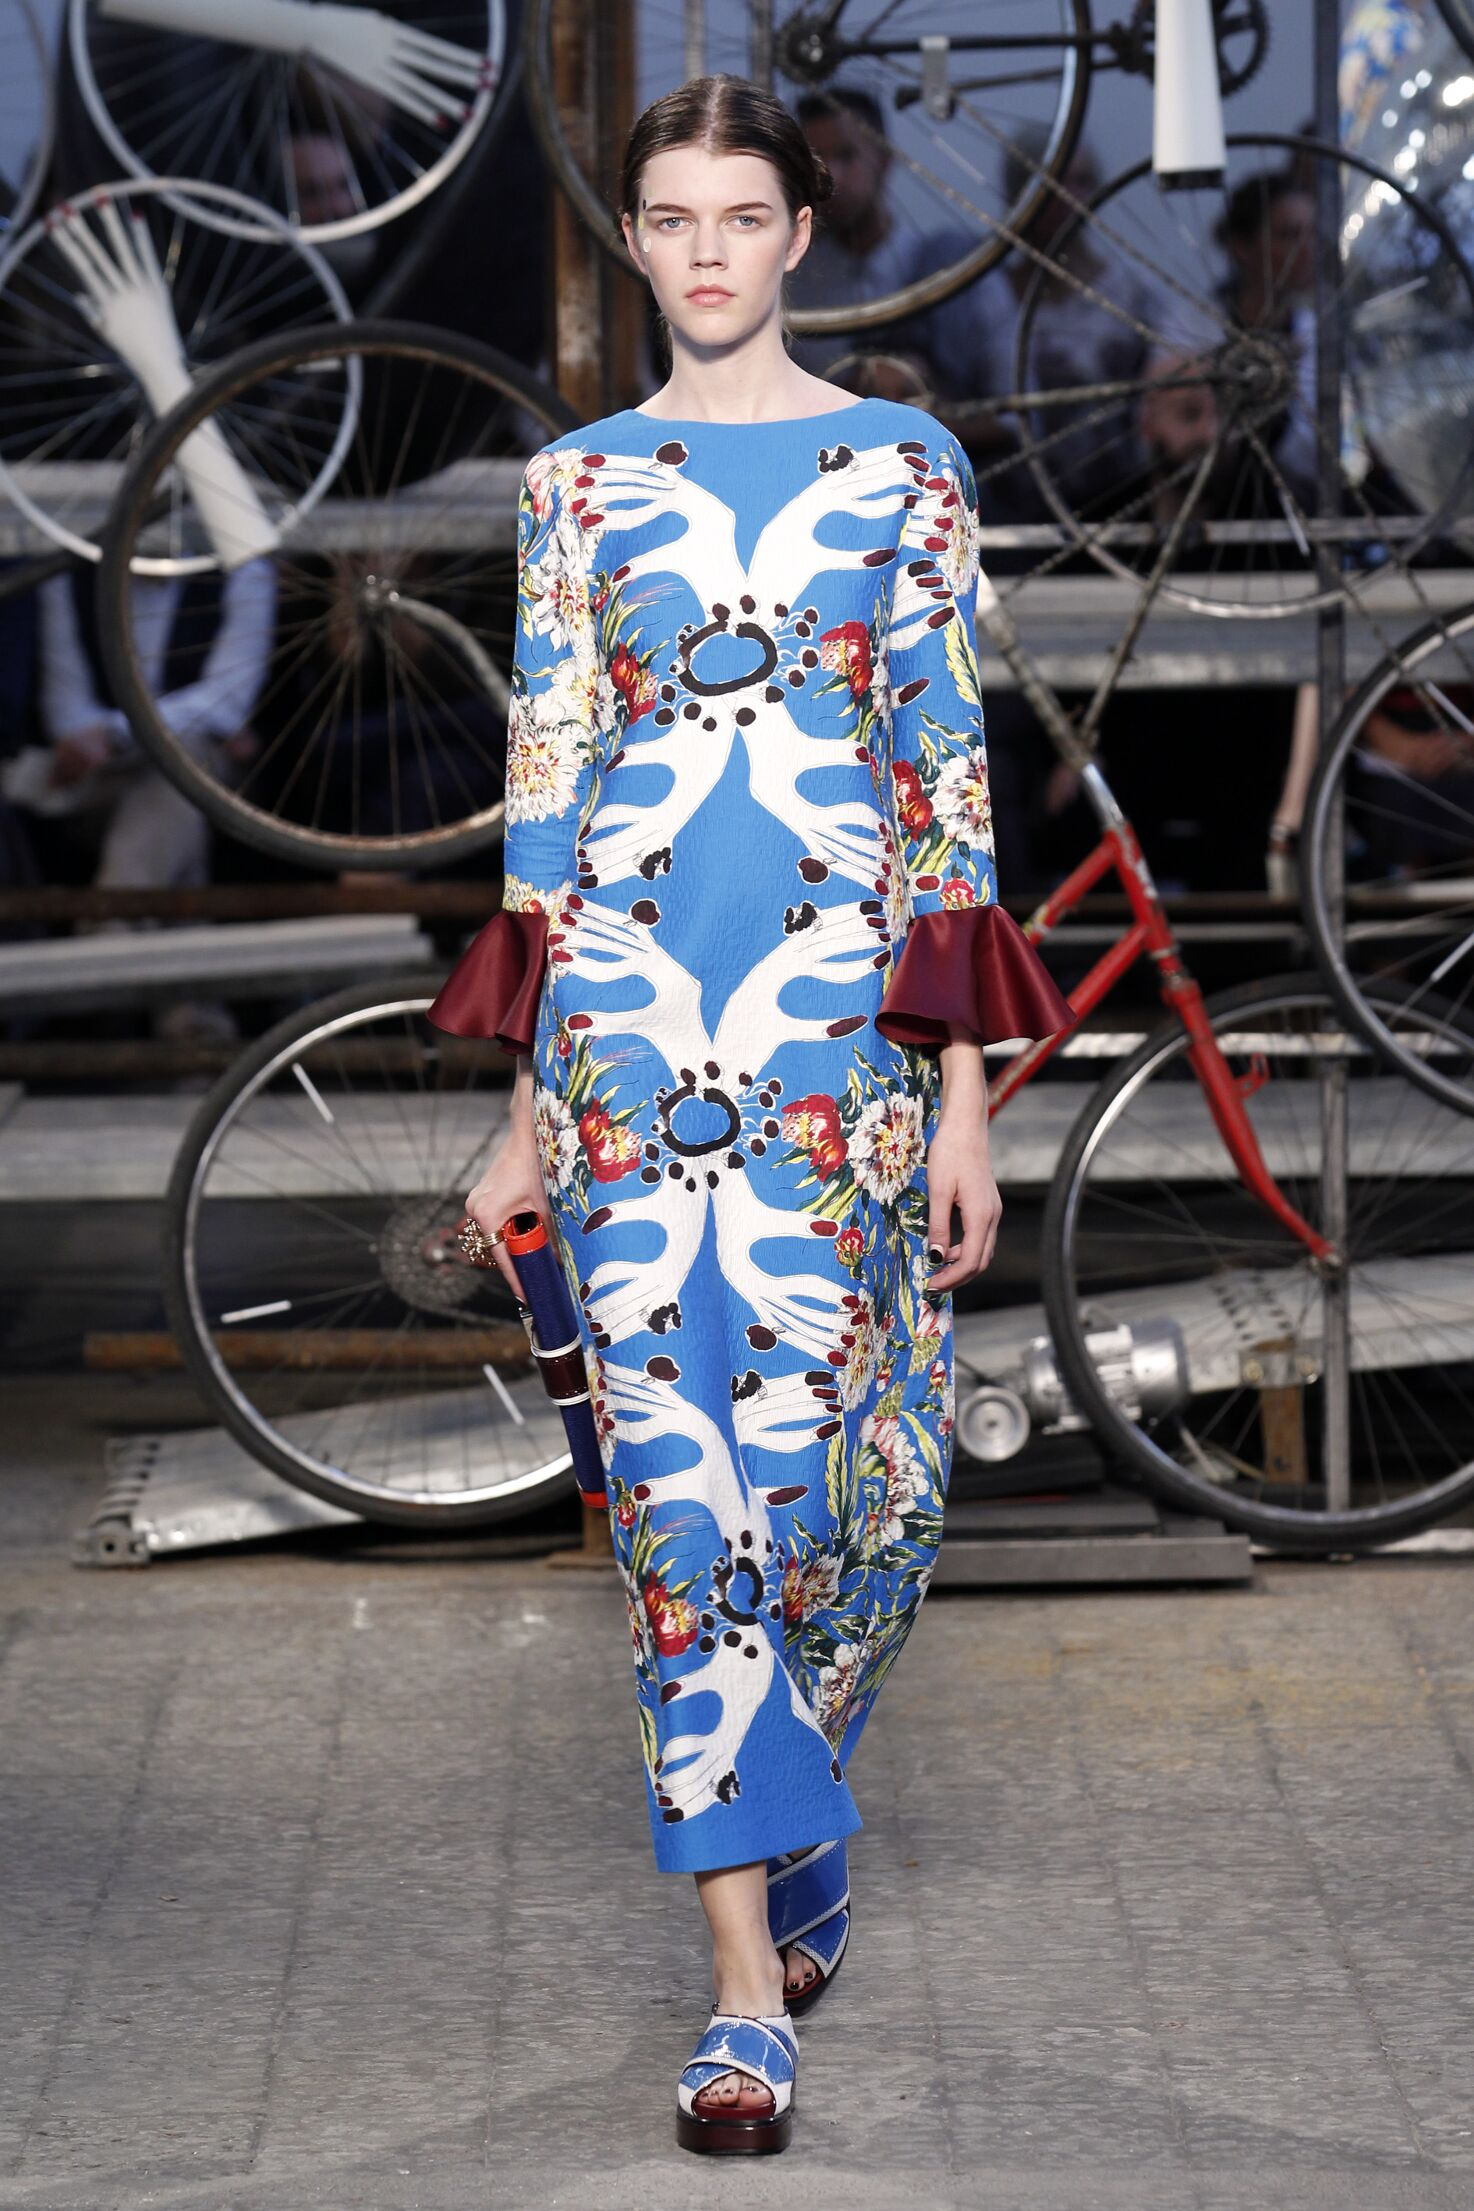 Antonio Marras Summer 2015 Womenswear